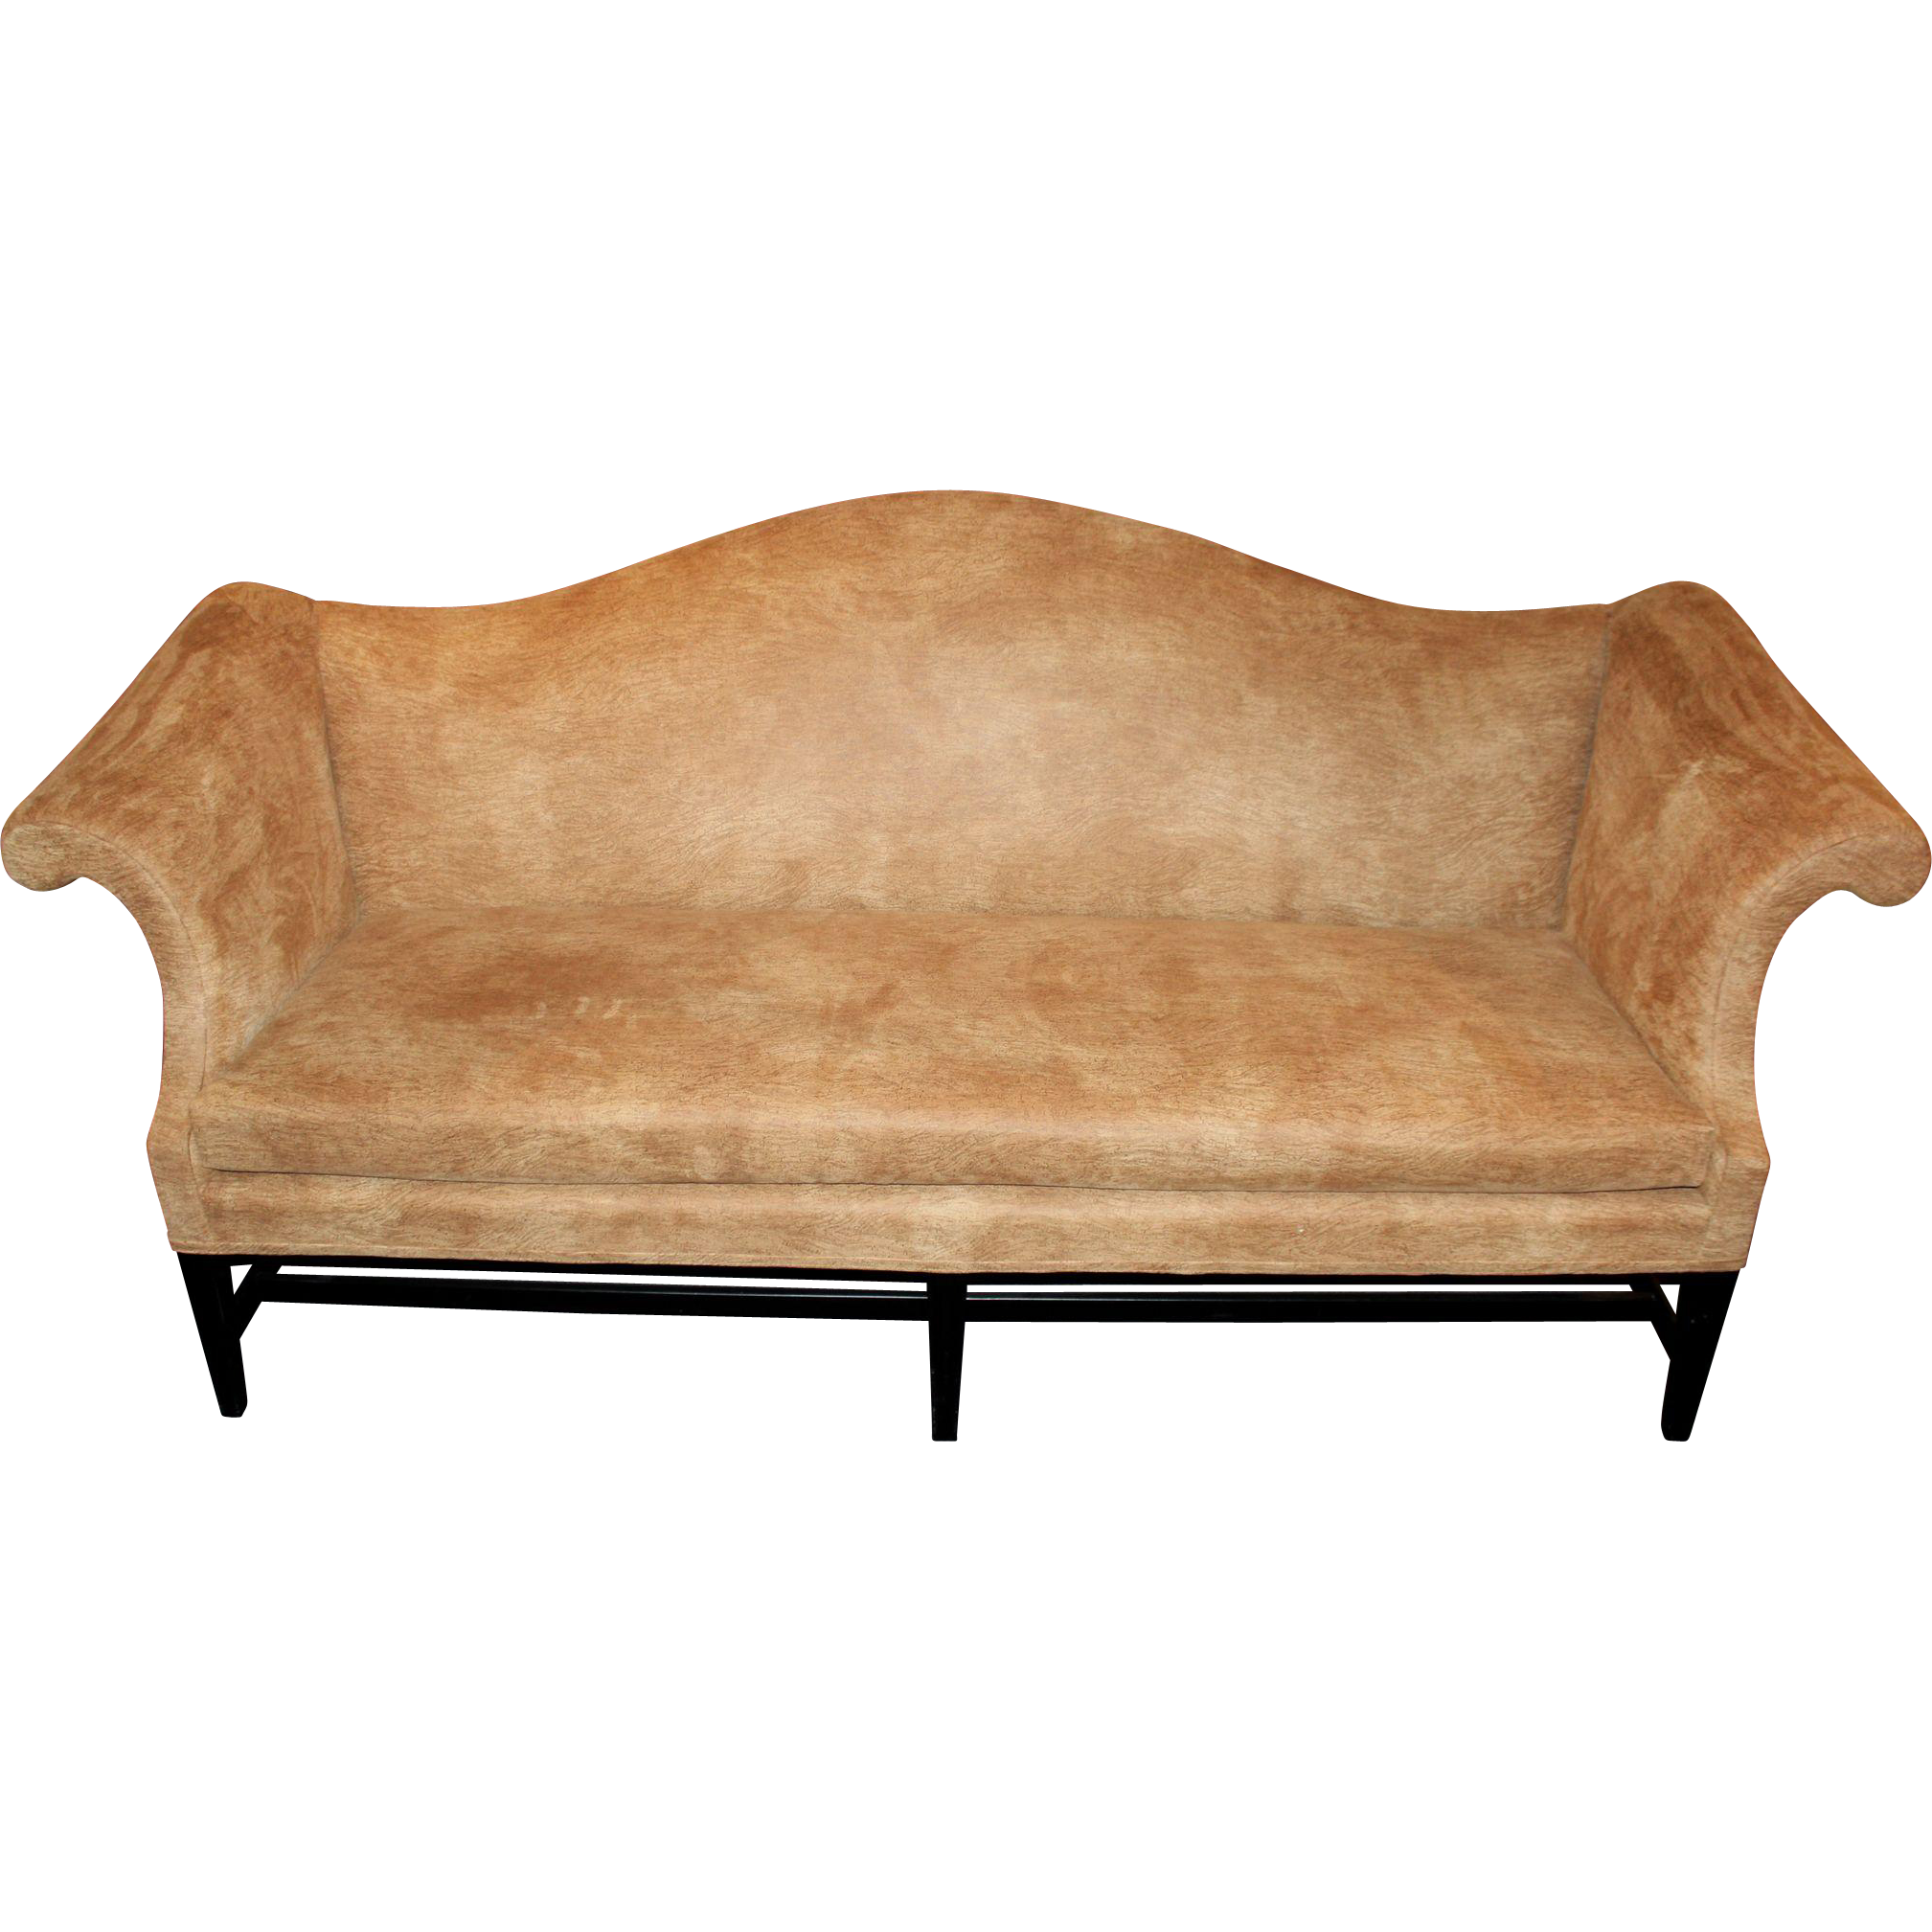 Chippendale Style Mahogany Camelback Sofa in Faux Cork Upholstery